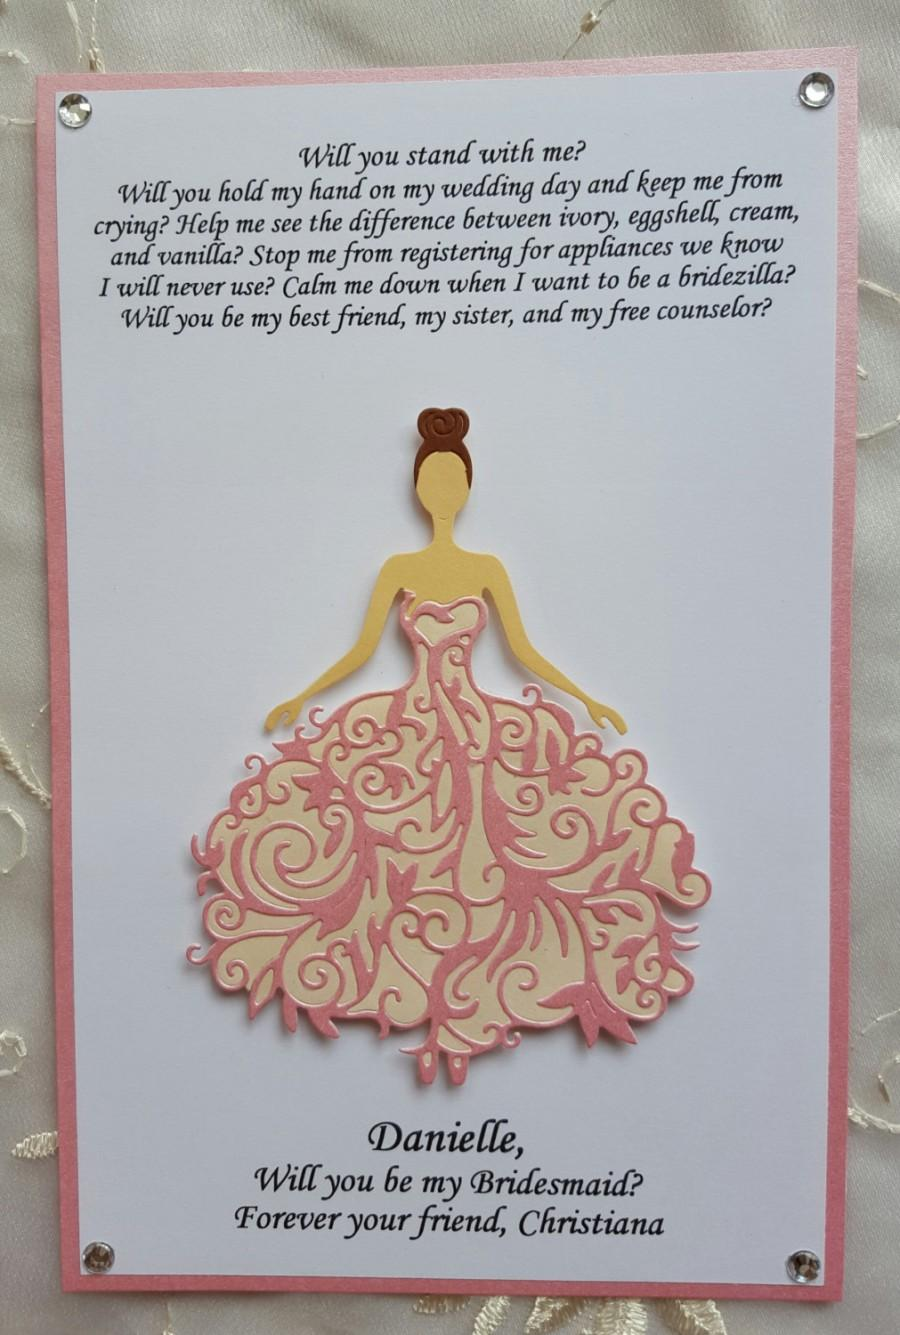 Will you be my bridesmaid invitations dress cards gift maid will you be my bridesmaid invitations dress cards gift maid matron of honor card bridal gown invitation 1 2 3 4 5 cards ombrellifo Image collections